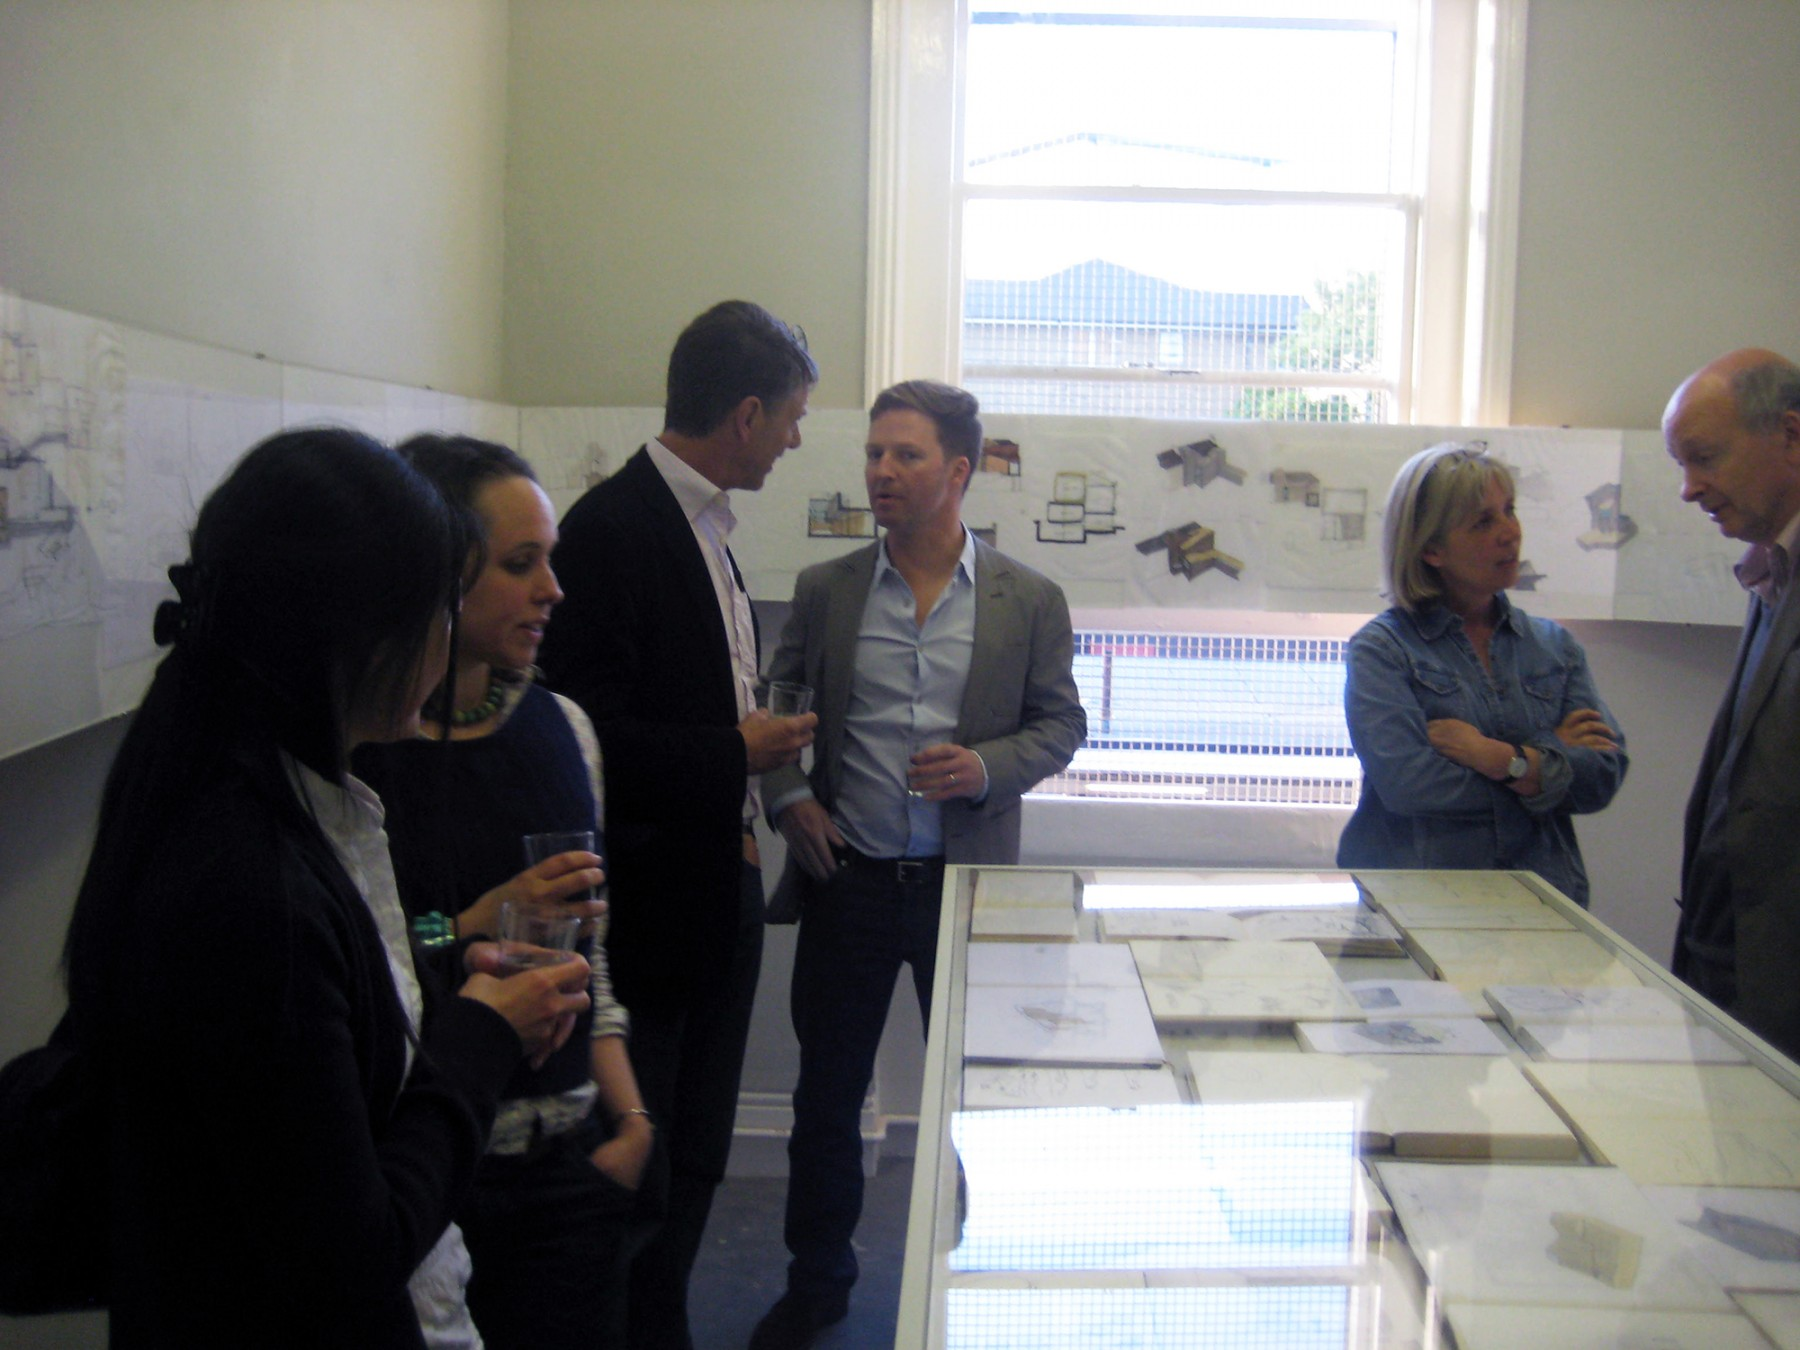 Jamie-Fobert-Architects-C4RD-Exhibition-Architecture-Sketch-Books-sketches-opening 1